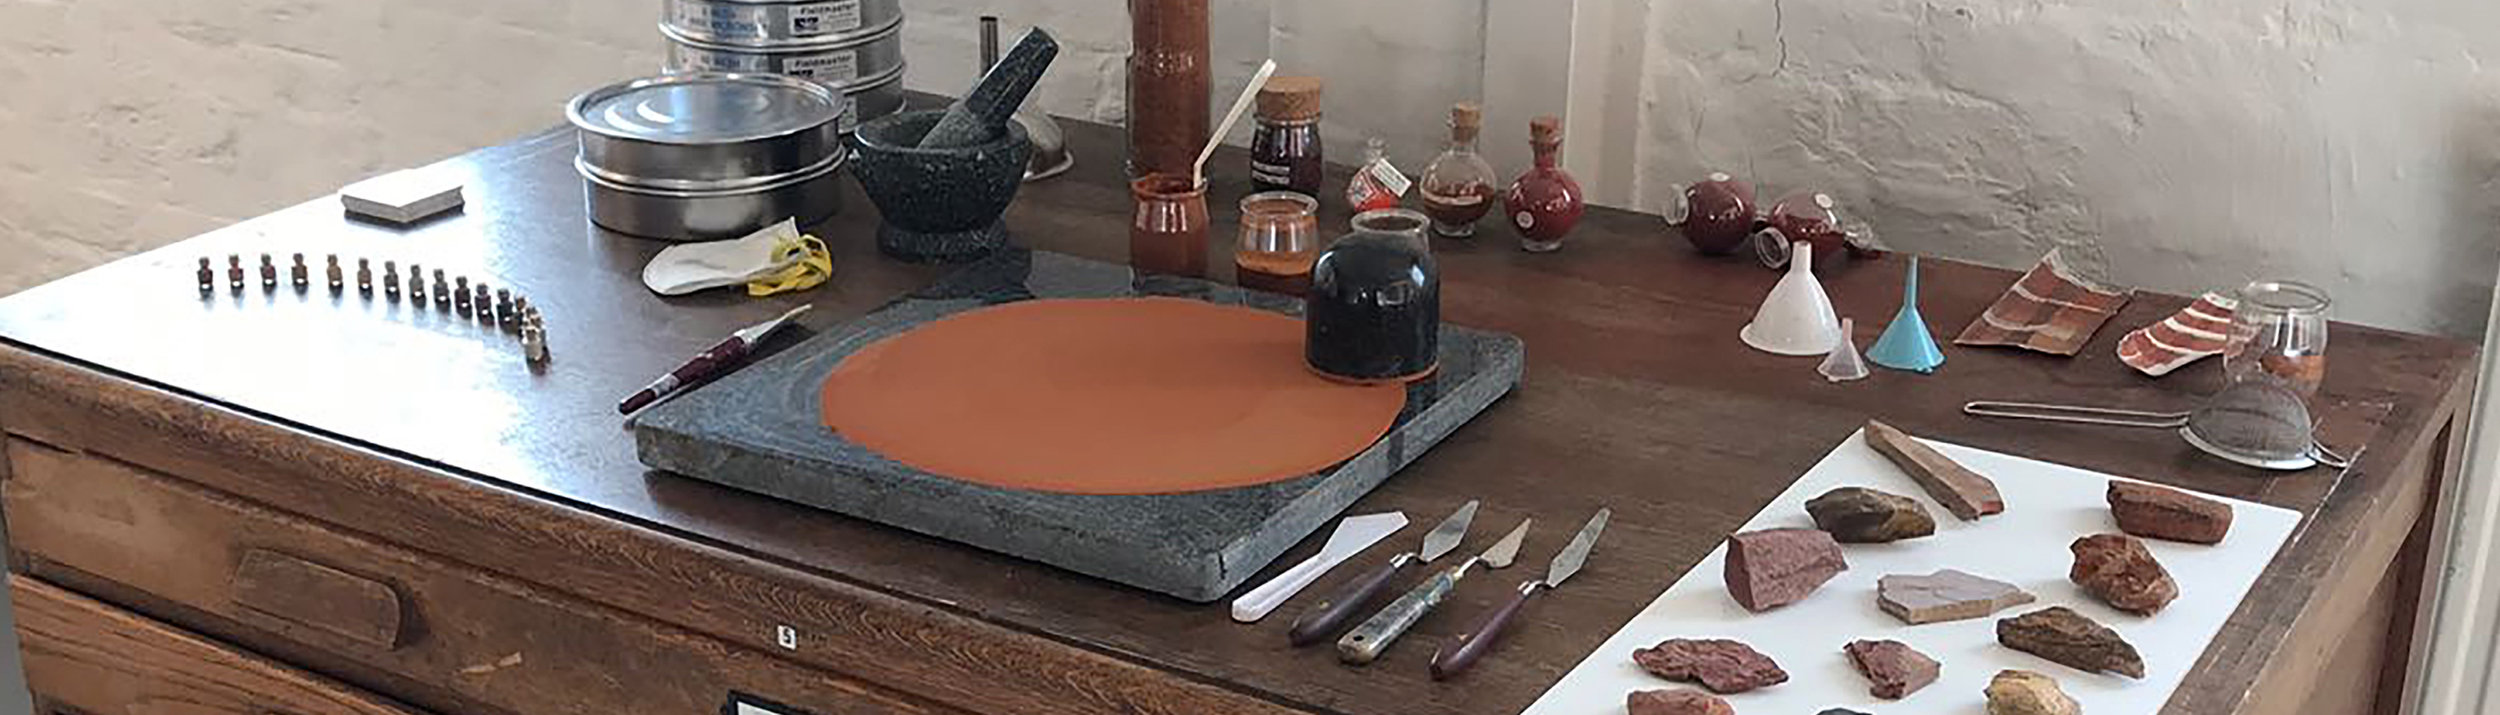 Pigment grinding in Catalina Christensen's studio. Photo courtesy of Catalina Christensen.